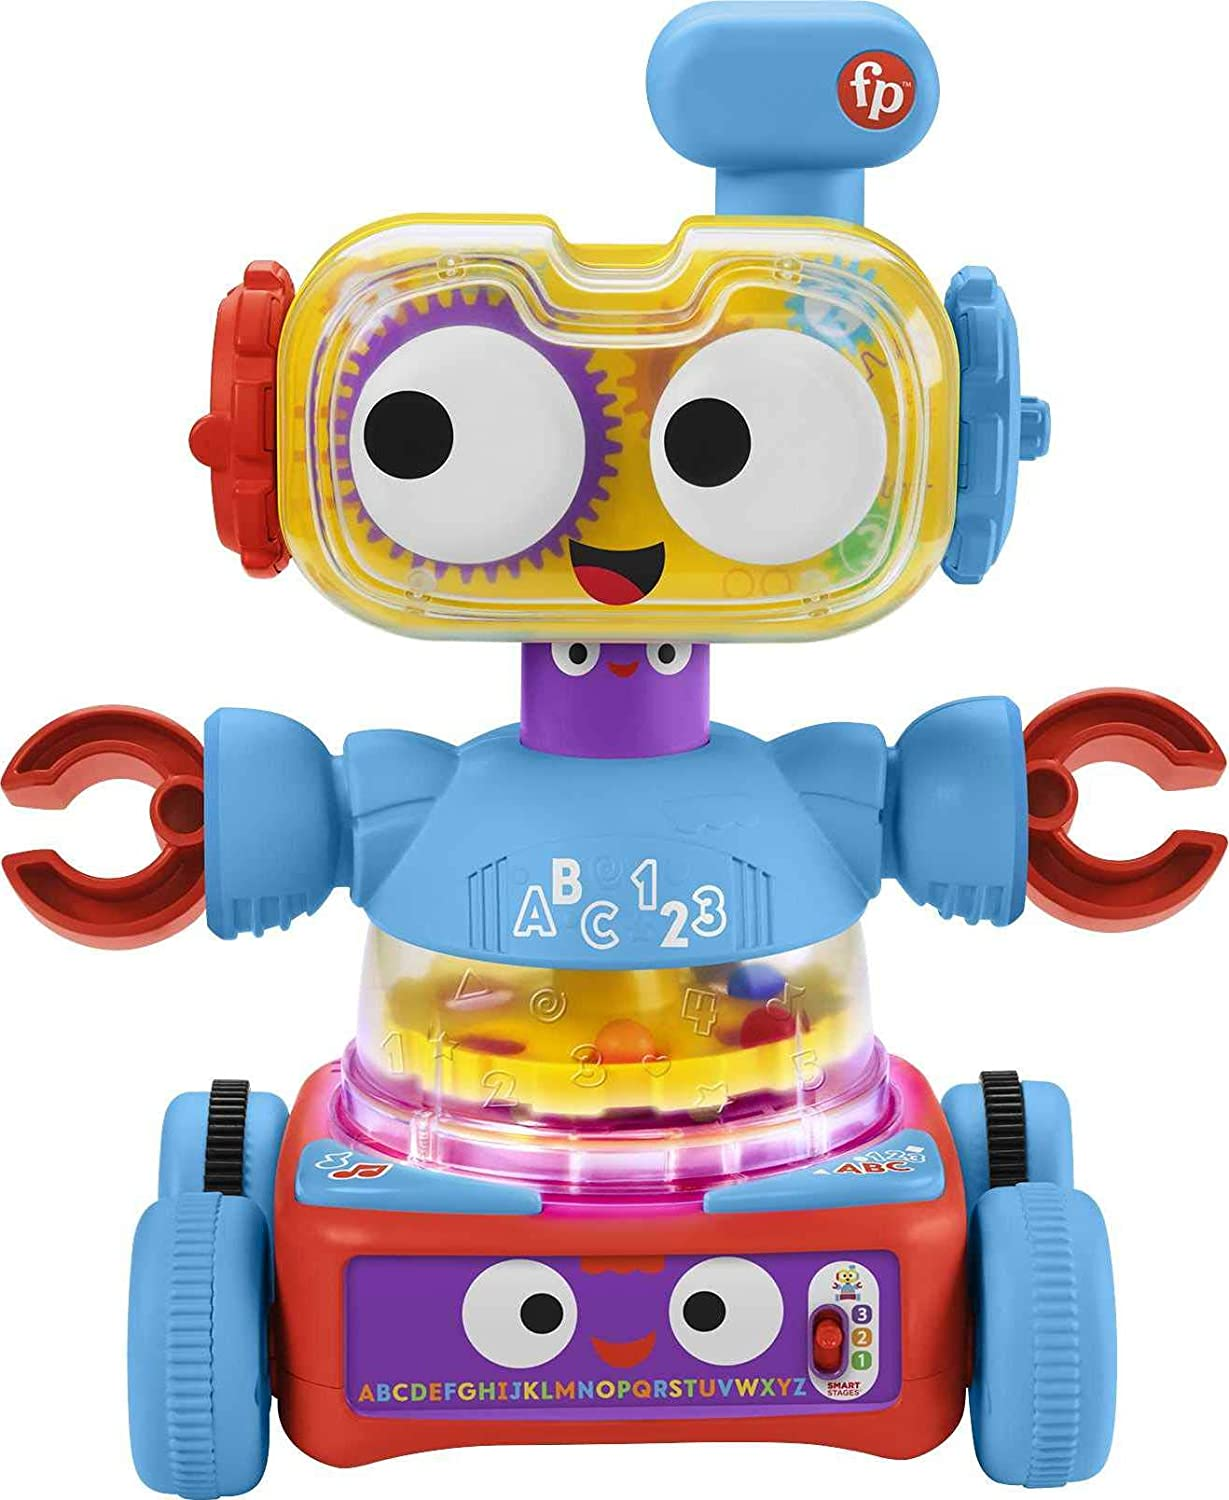 Fisher-Price 4-in-1 Ultimate Learning Bot - built up into one full interactive robot